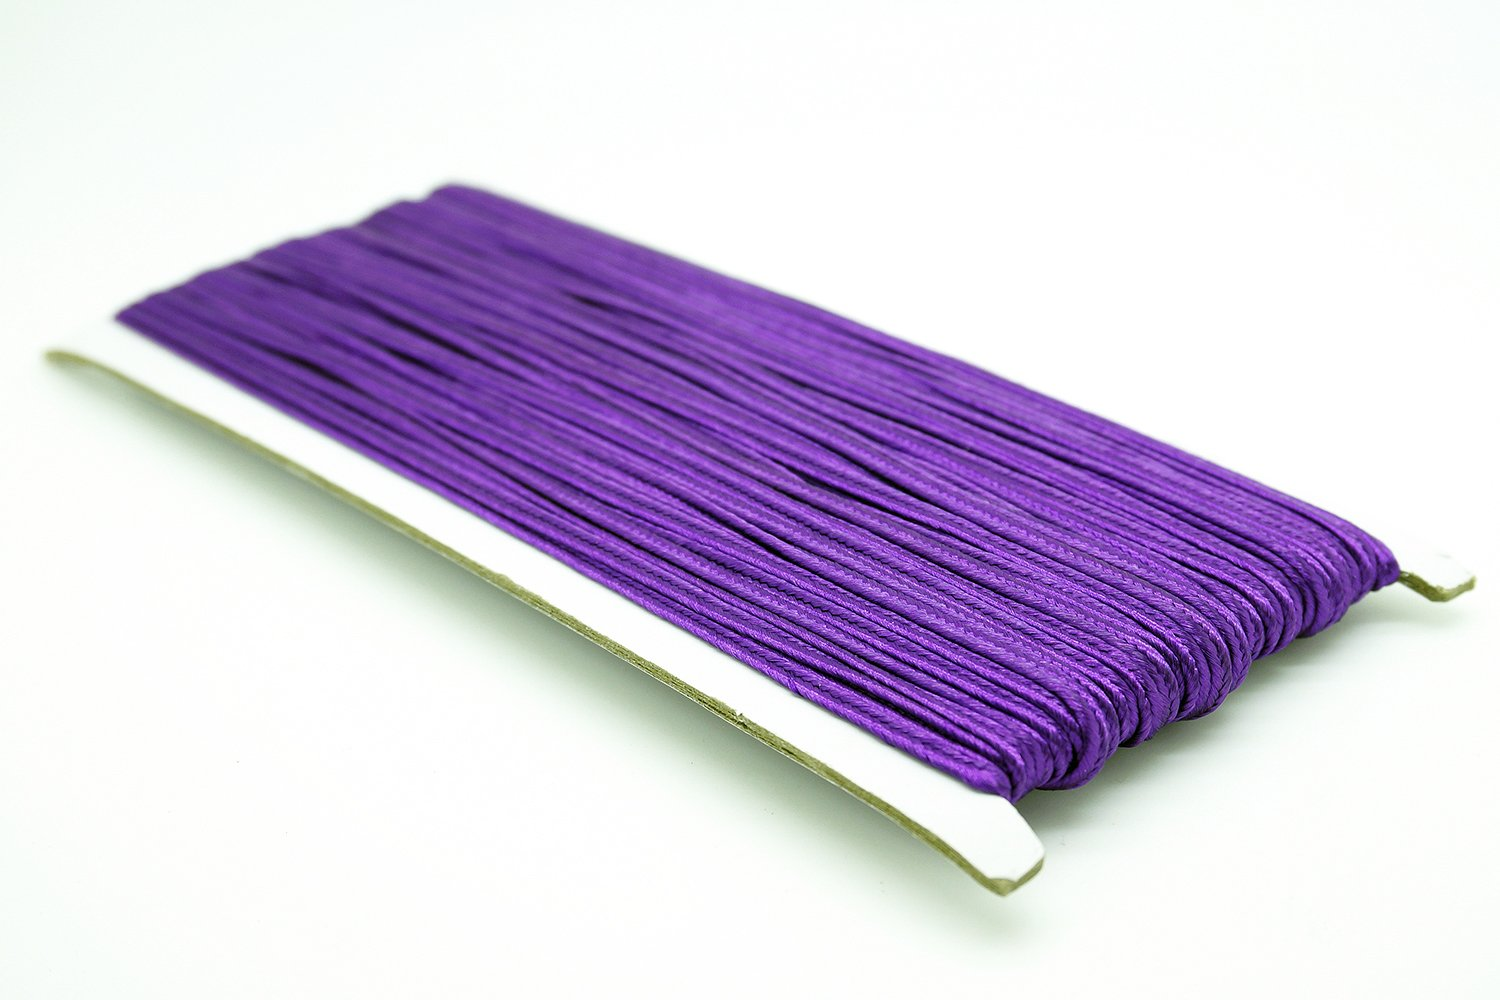 AMETHYST PURPLE 3mm Polyester Soutache Braid Cord String Beading Sewing Quilting Trimming - 30 Yards